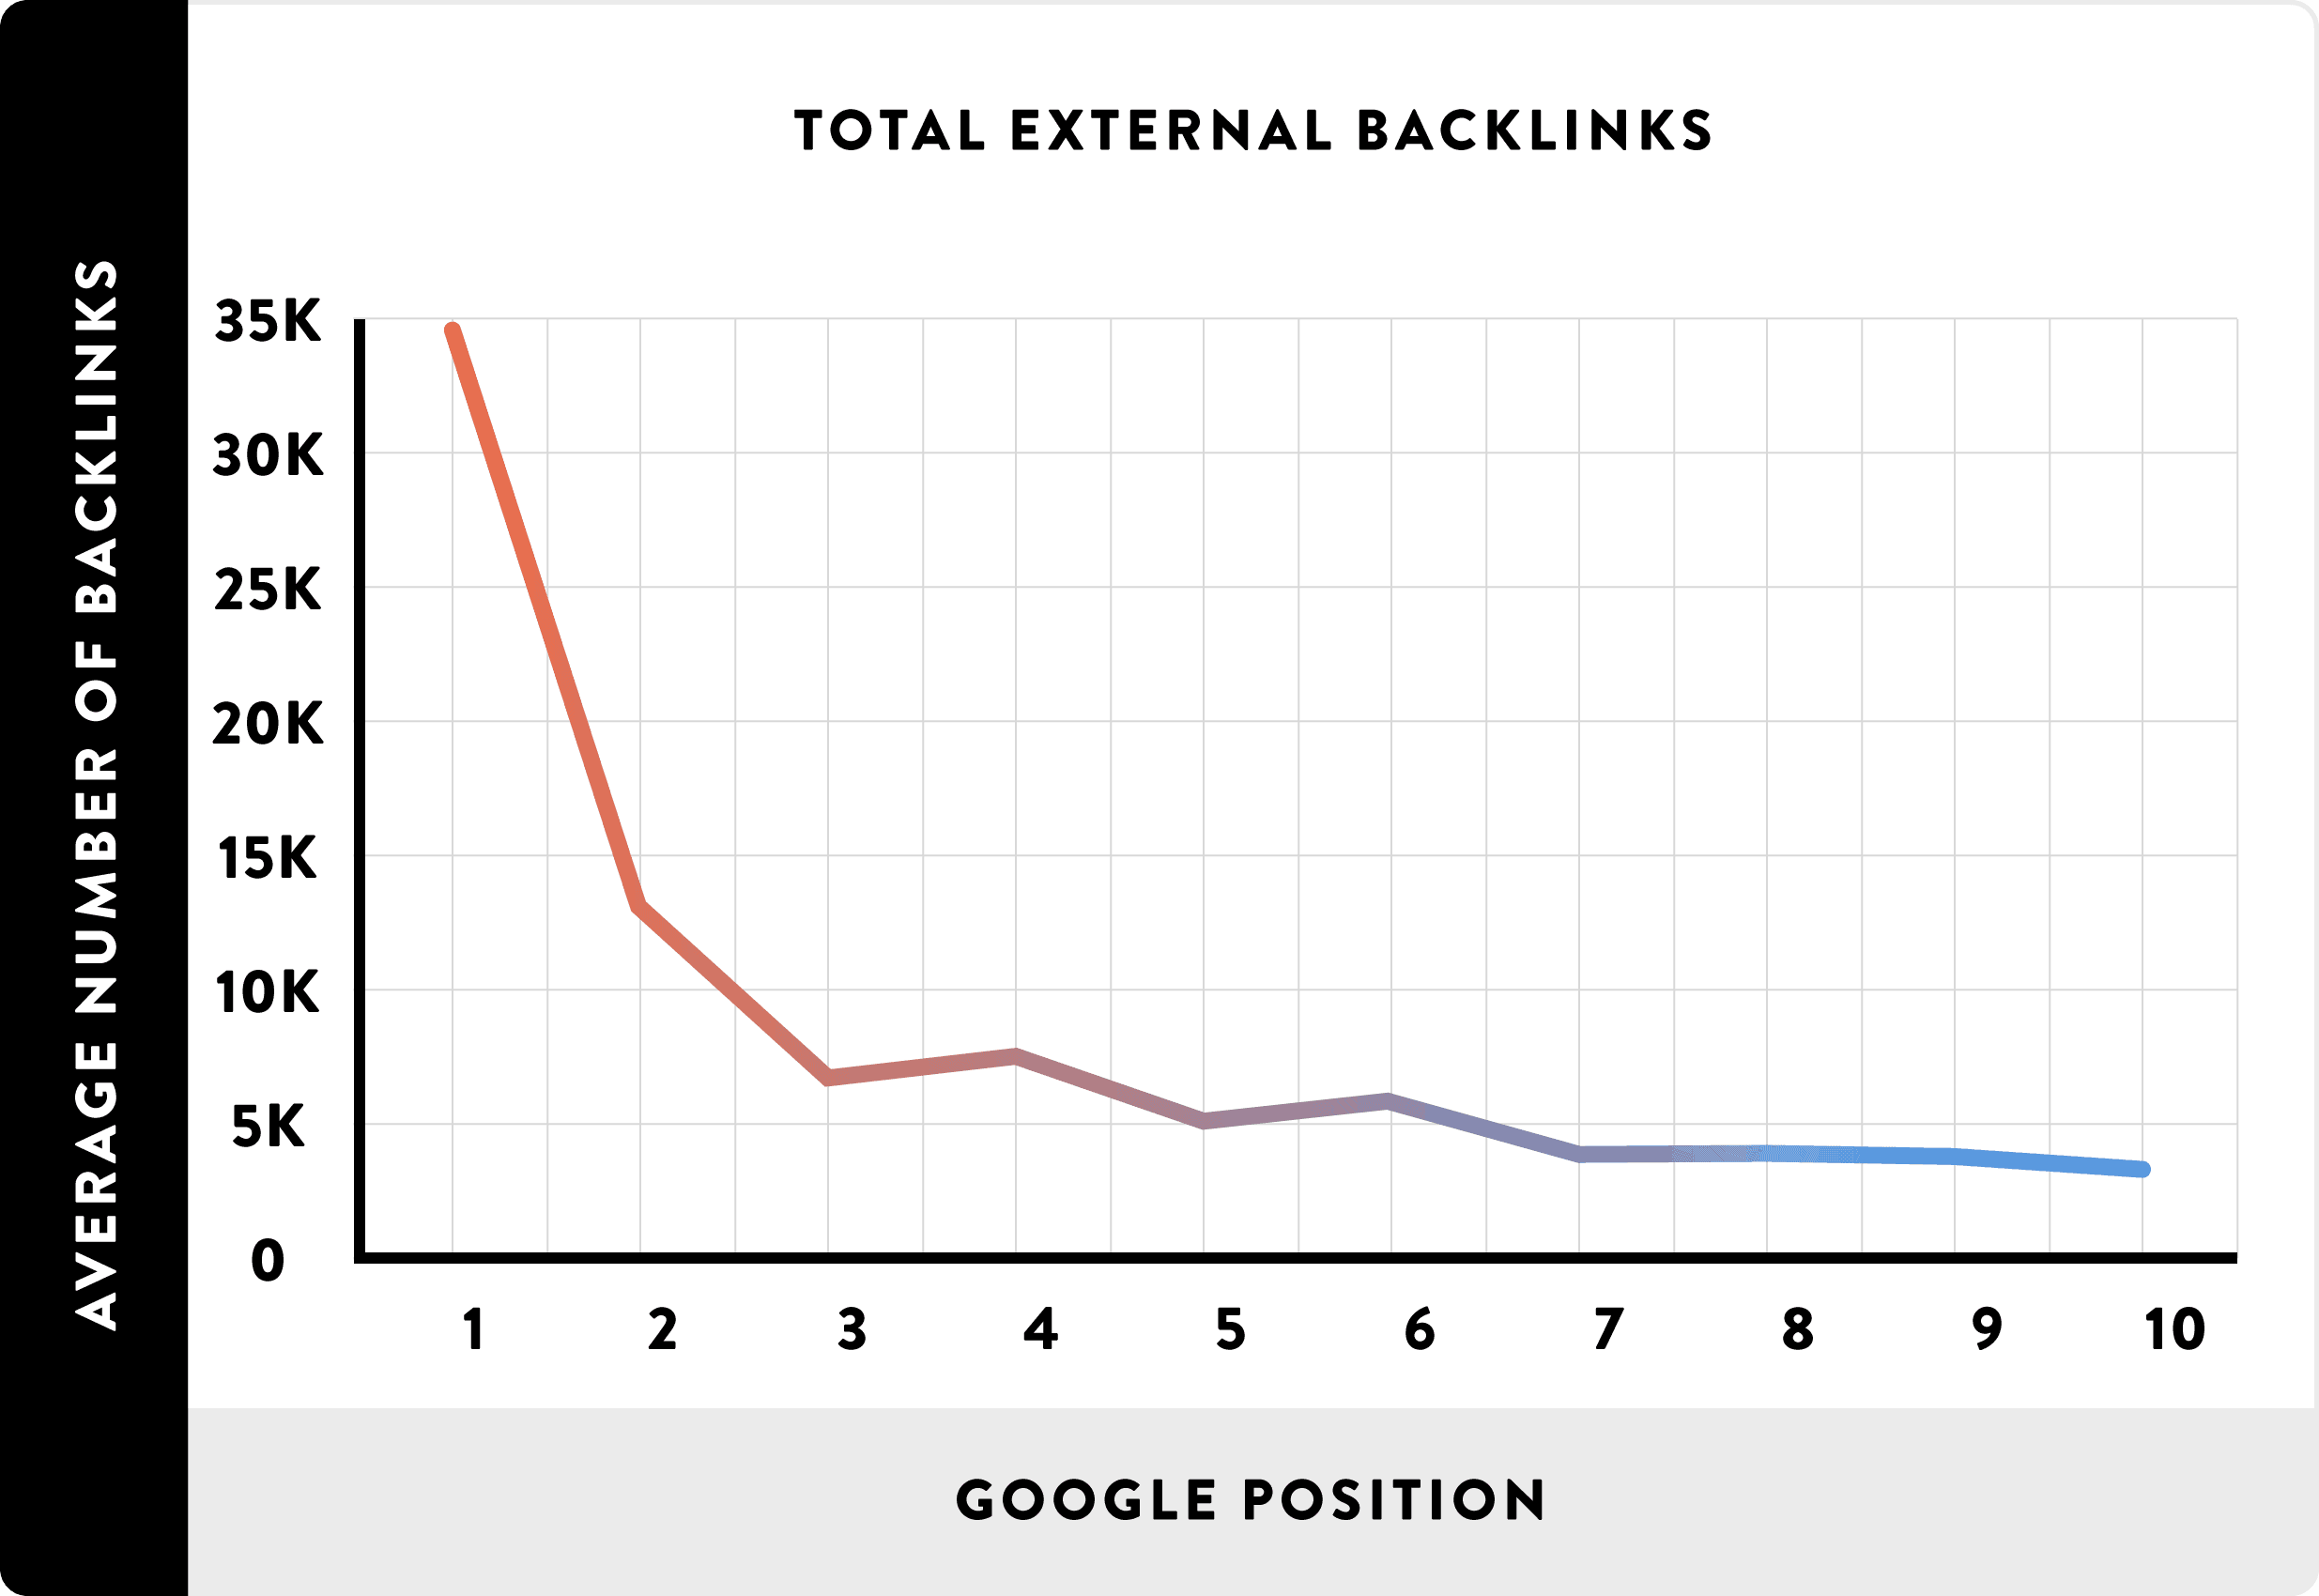 Links are a key ranking signal